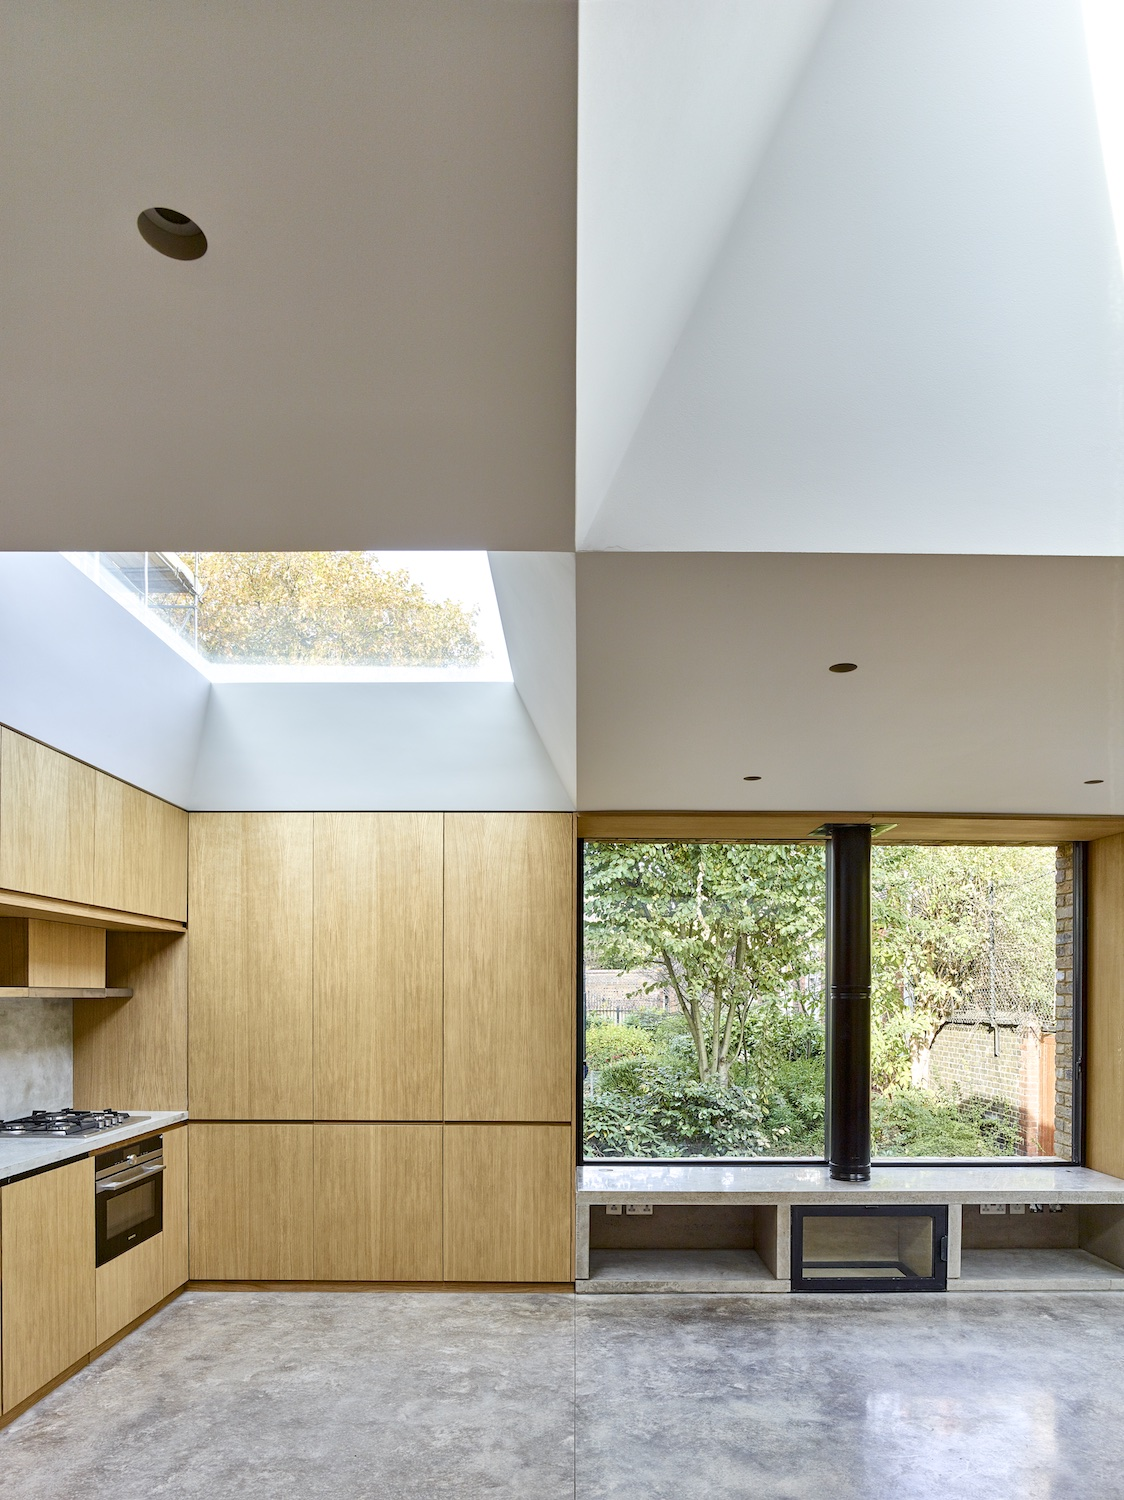 161103-coffey-architects-kingsway-007